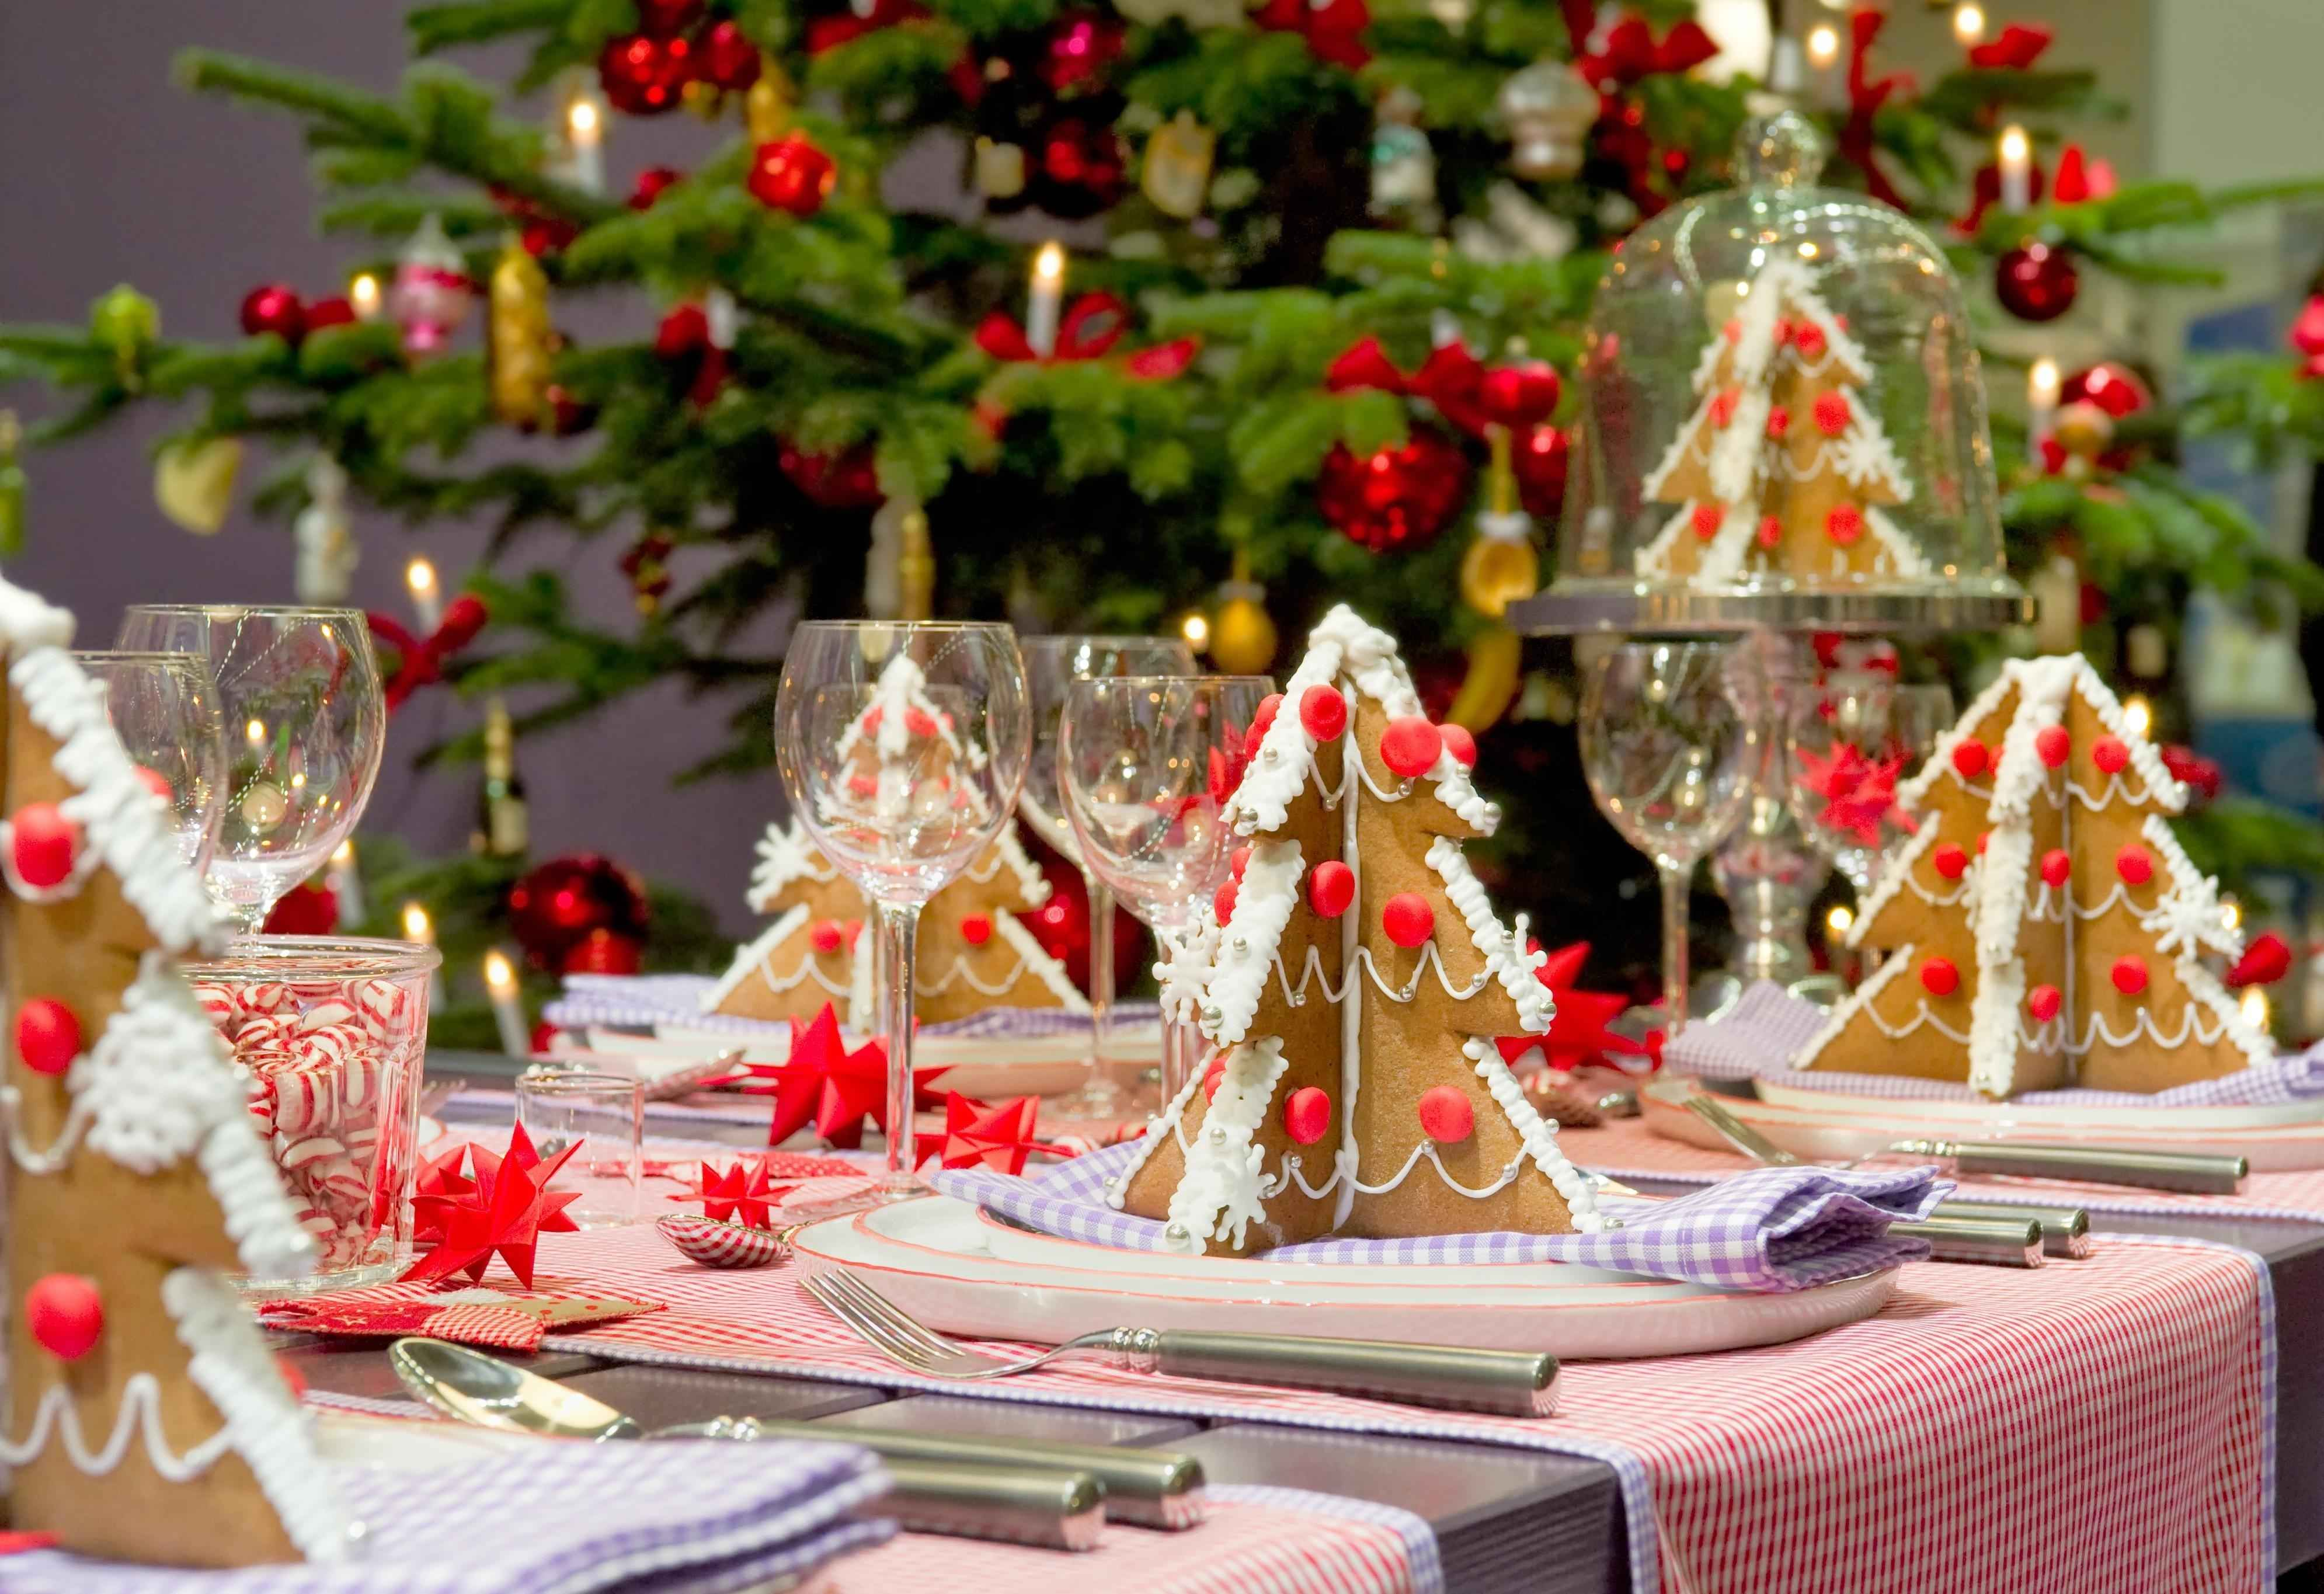 Festive table setting with 3D Christmas trees made from gingerbread